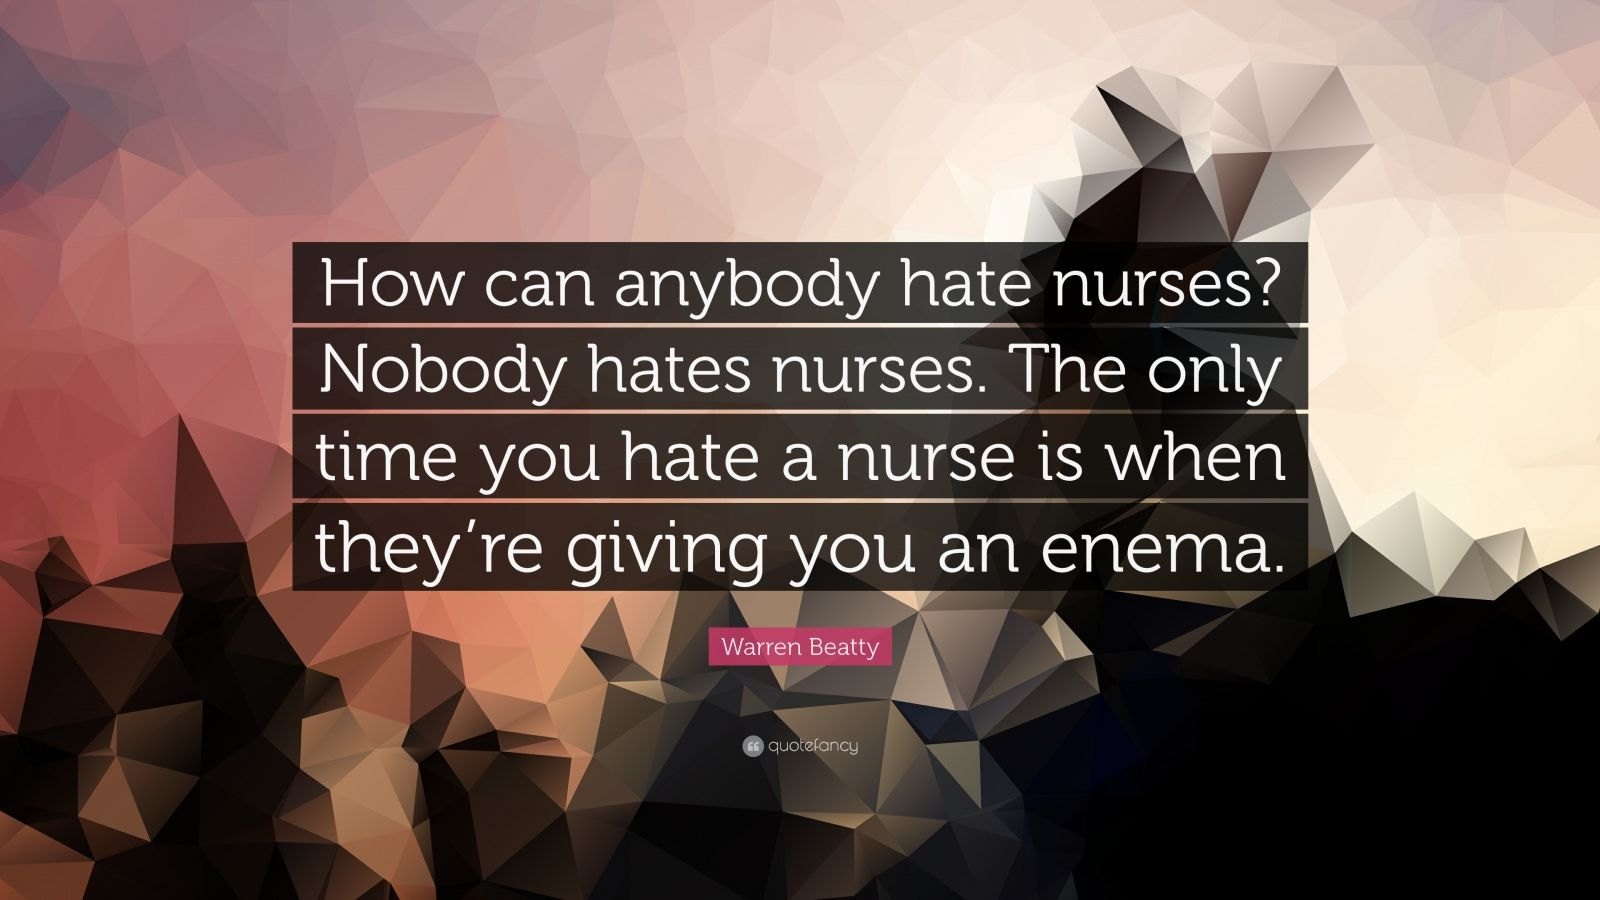 become essay i nurse want why Why do you want to become a nurse applicants to nursing schools all over the world are normally asked this question during the admission interview or their personal essay it might sound like an innocent question, yet it is intended to elicit a person's perspective and attitude towards nursing.